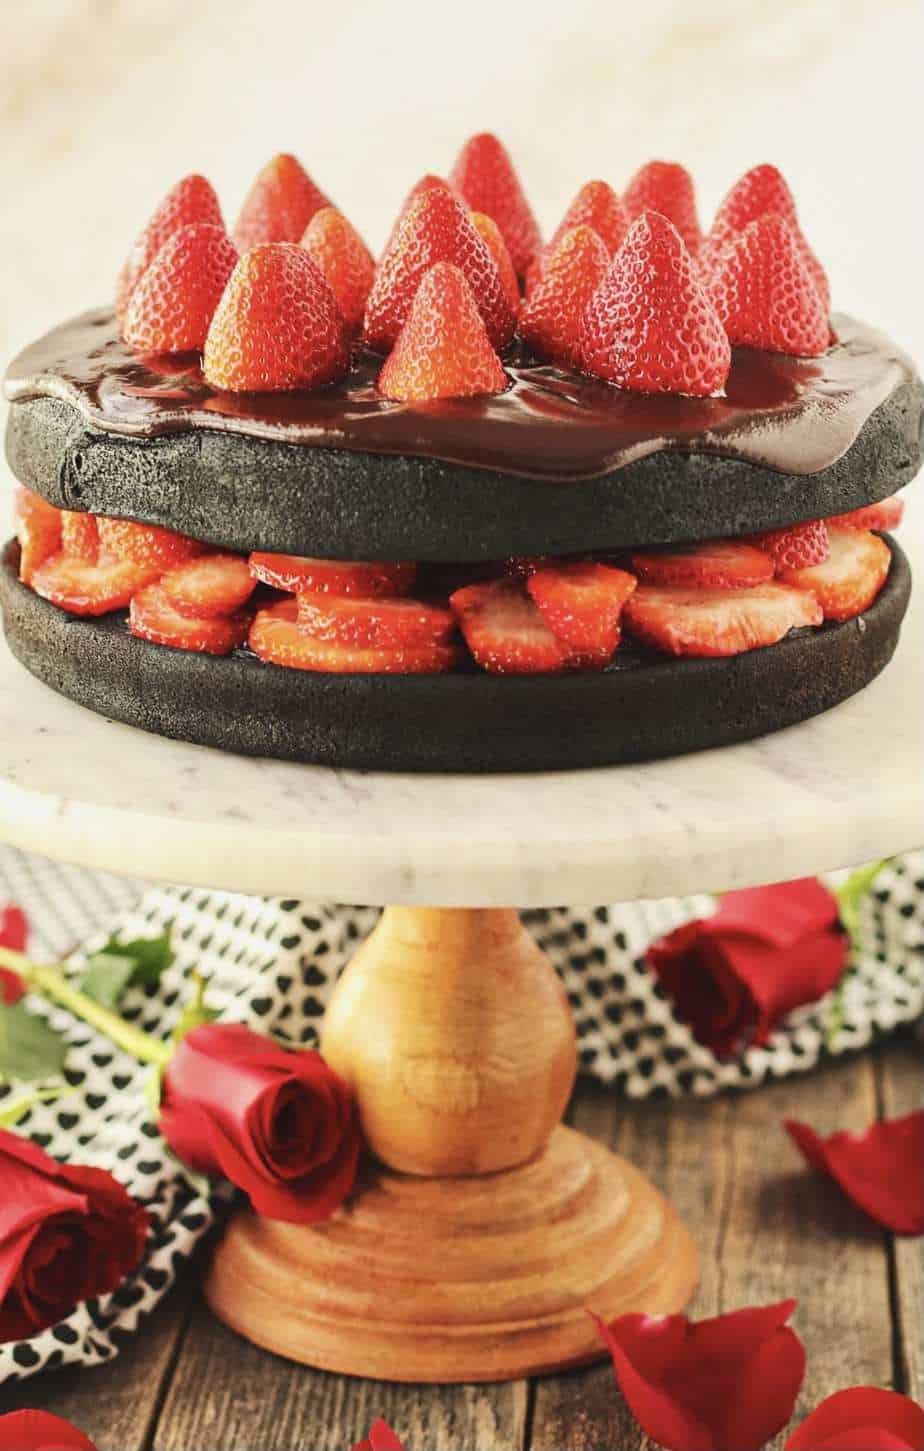 side angle shot of dark chocolate strawberry cake with chocolate ganache on top of marble and wood cake stand with strawberries arranged on top of cake and roses and cloth napkin in background.